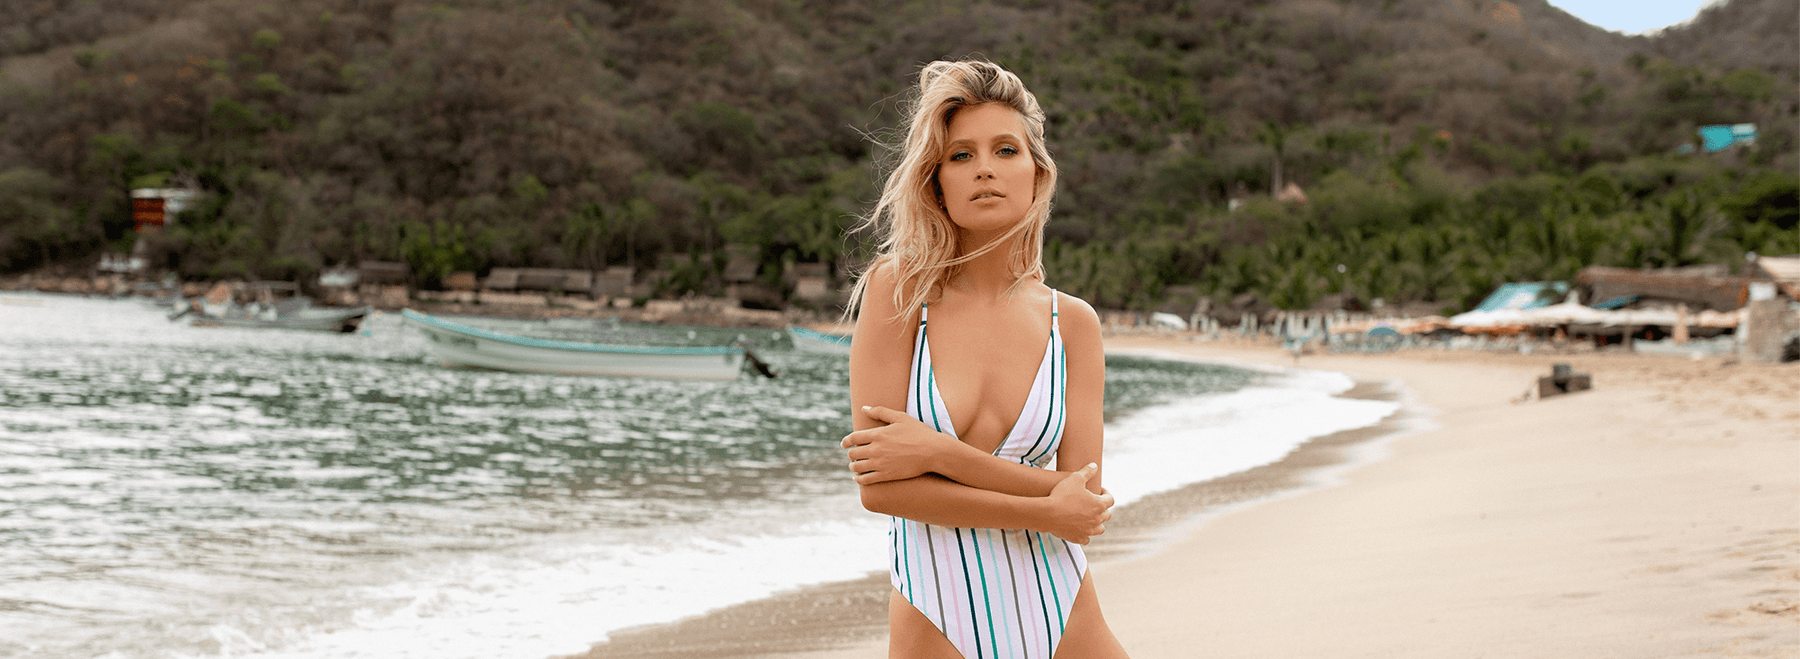 One-Piece Swimsuits From Daring to Baring